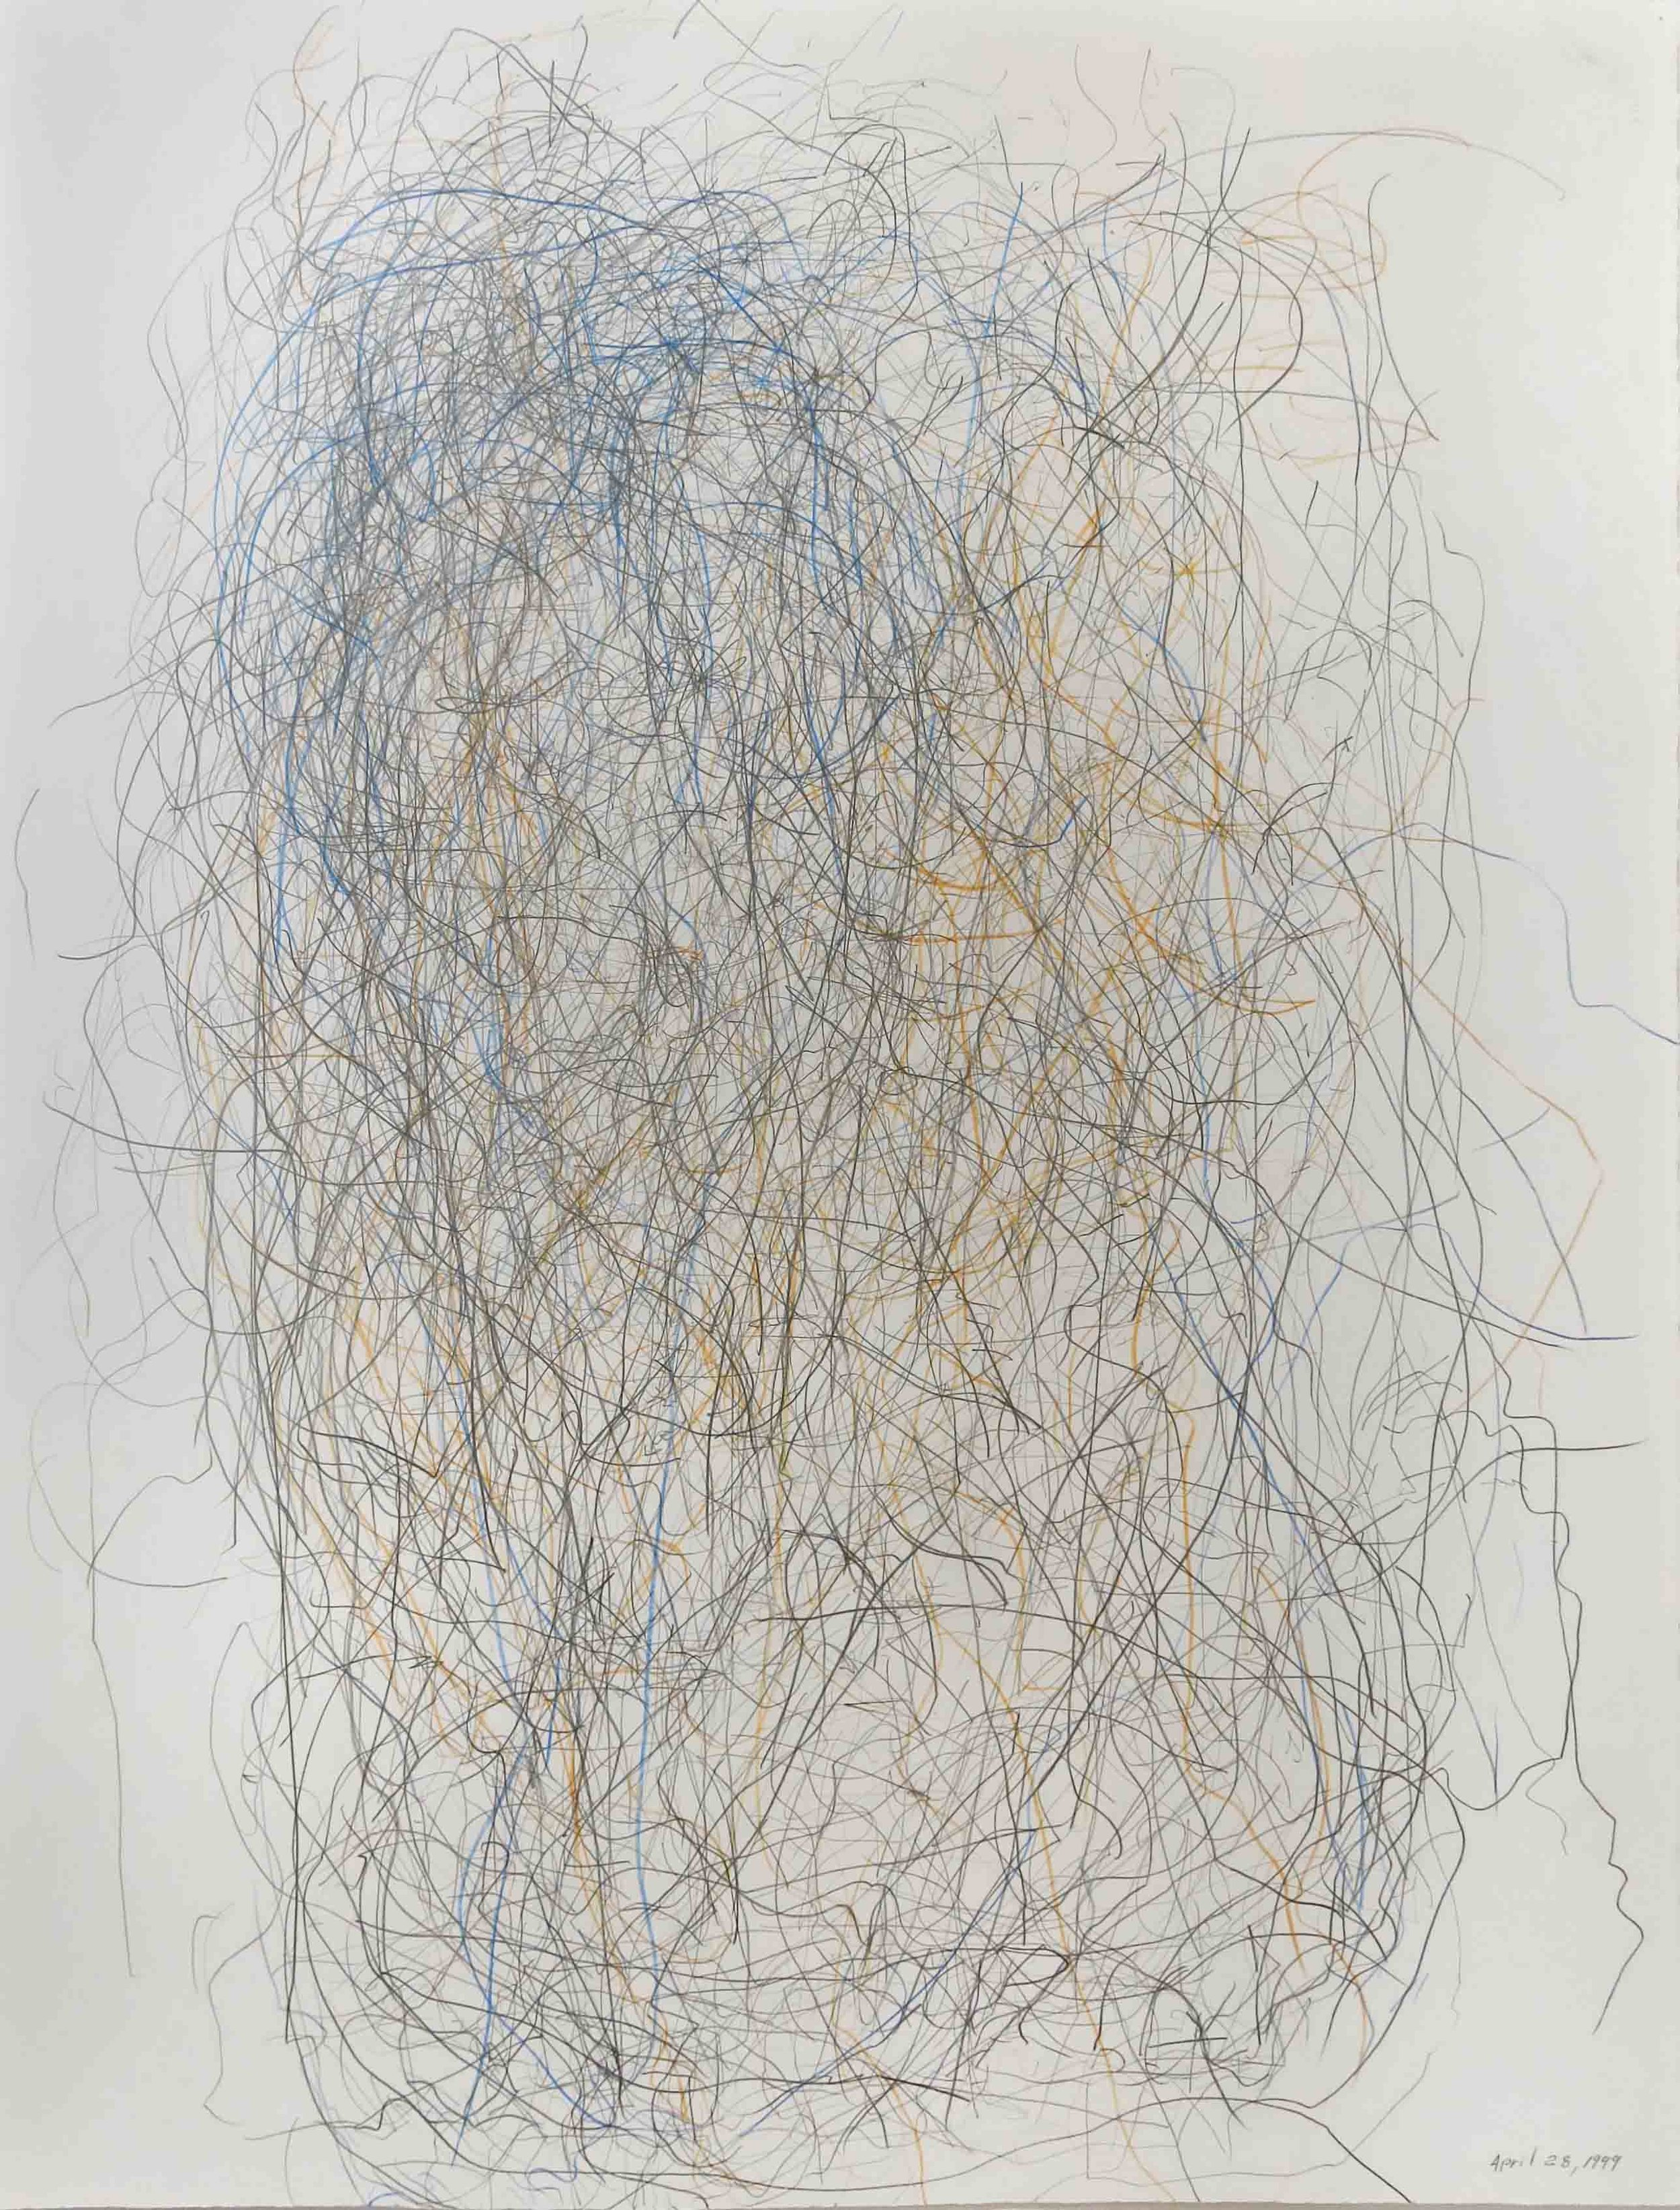 Edward Finnegan,  April 25, 1999 (Portraits series) , 1999, Graphite and colored pencil on paper, 30h x 22.5w in.